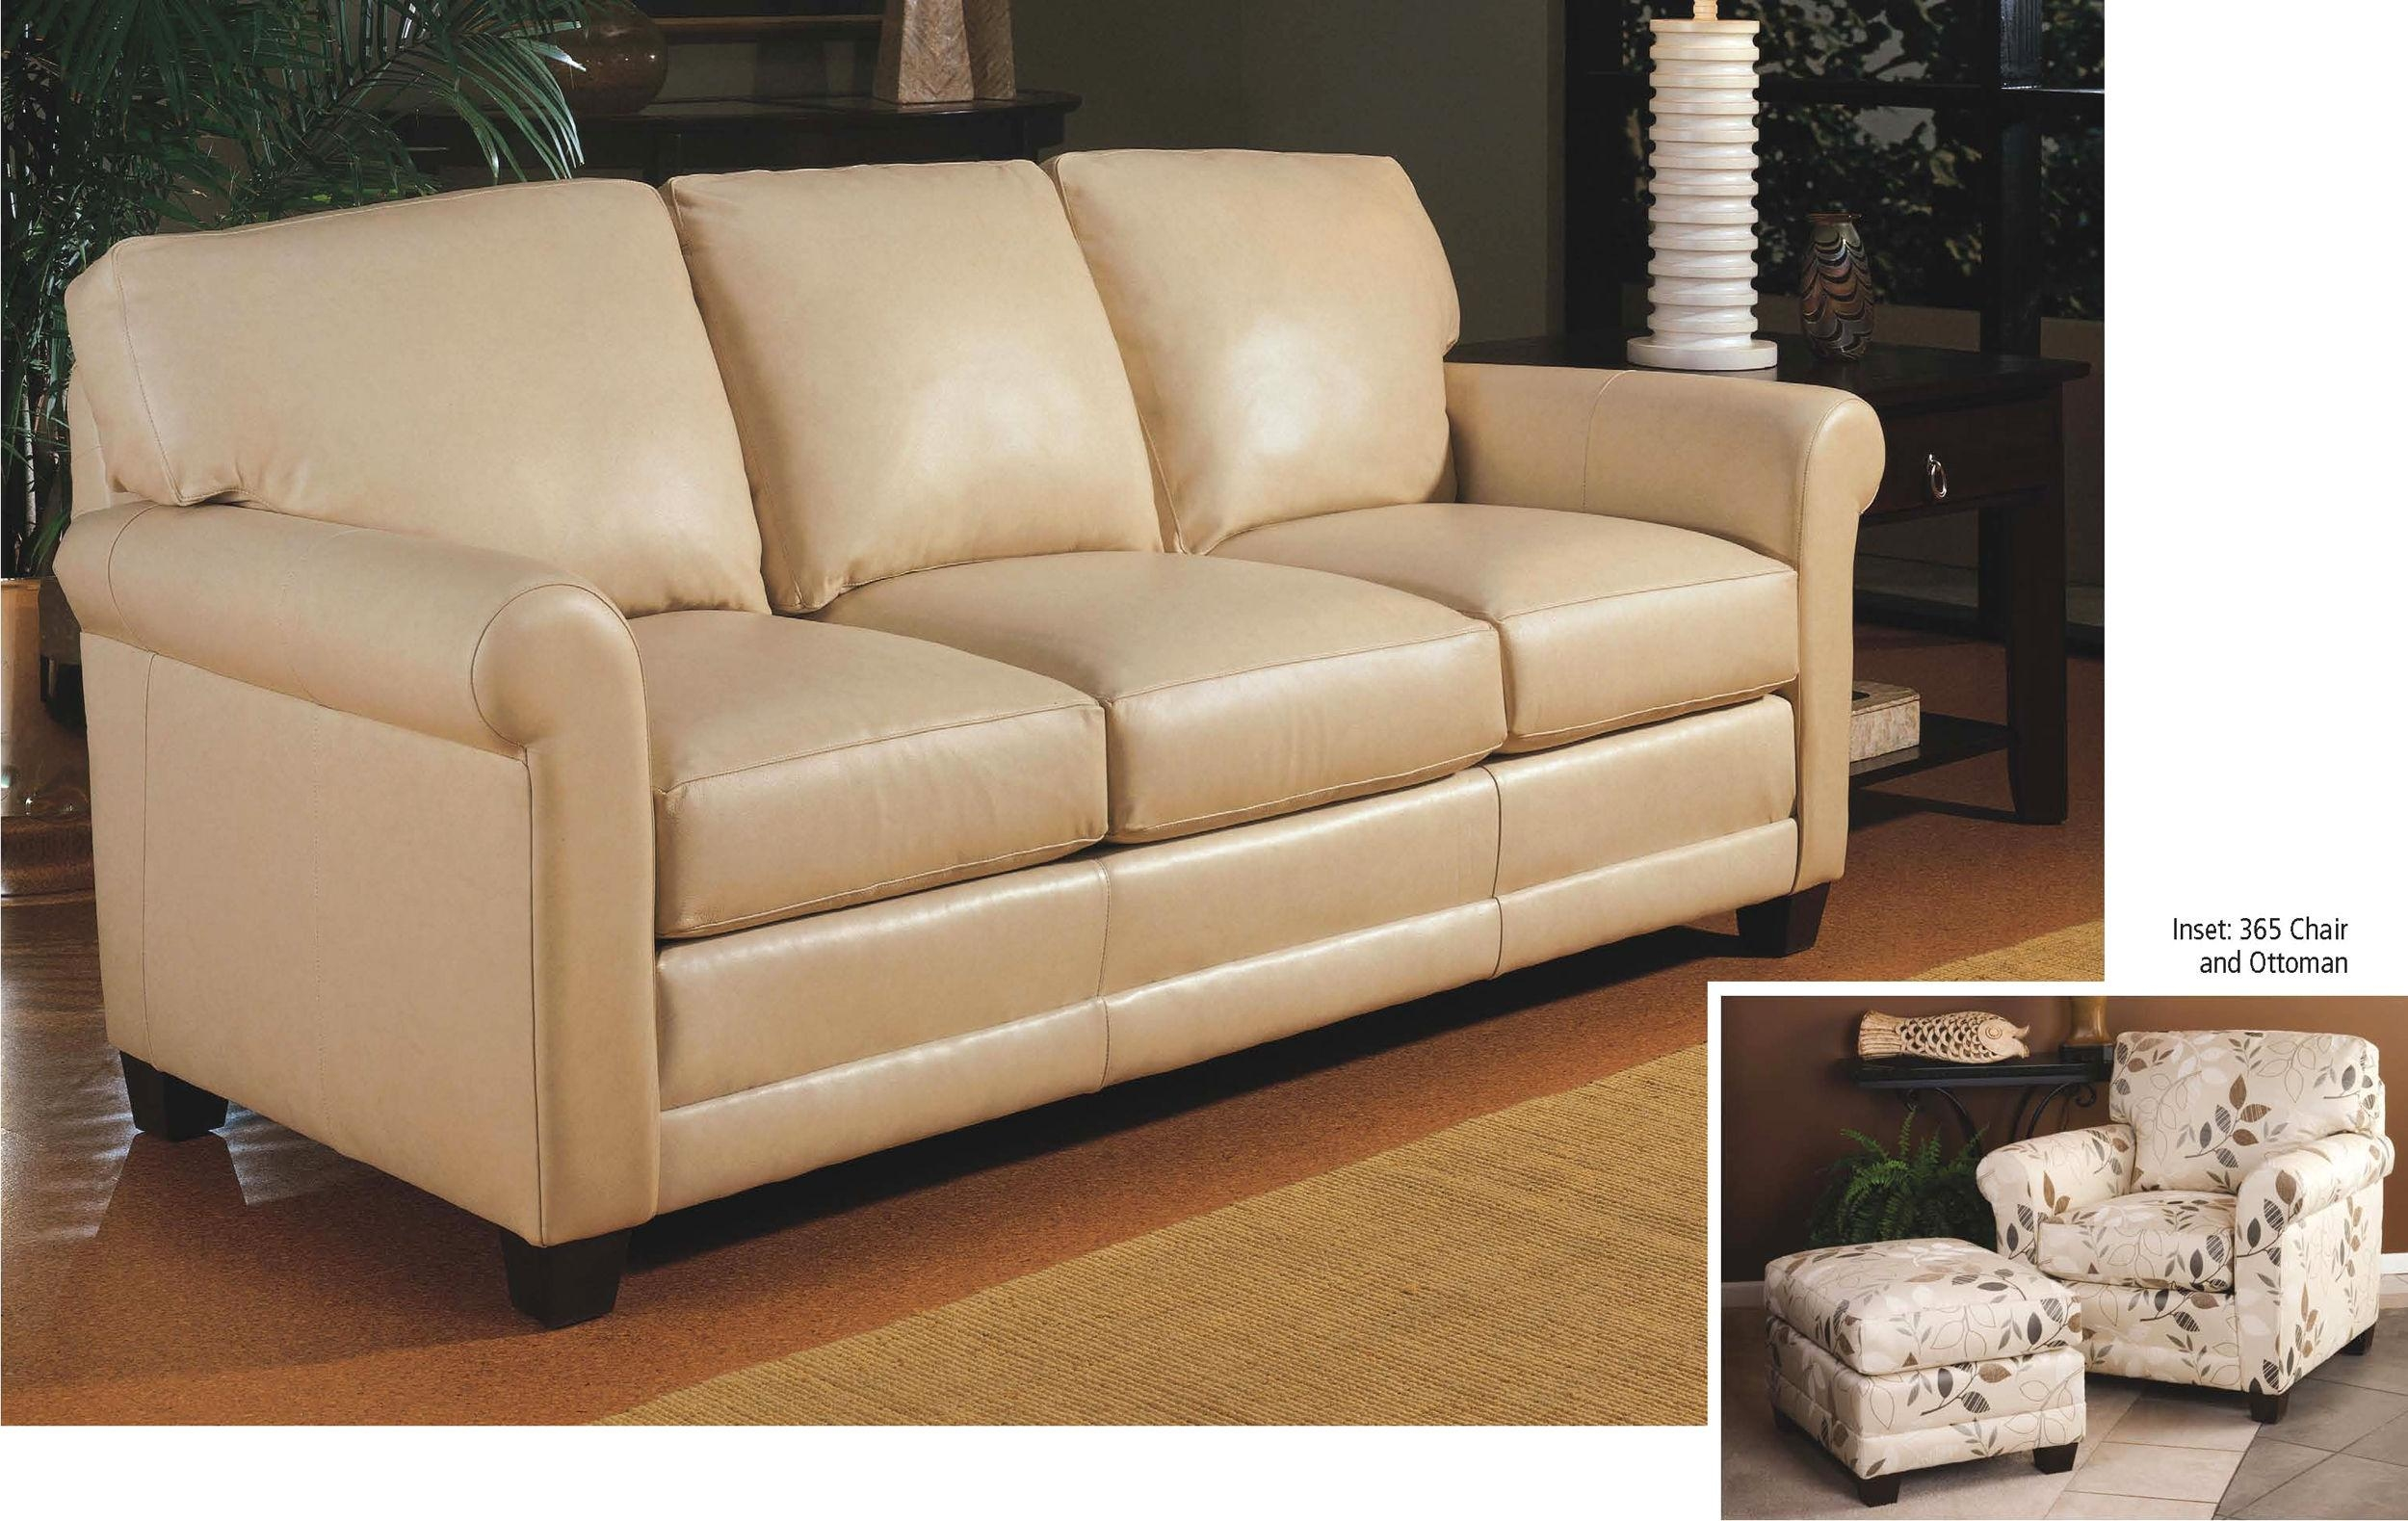 Smith Brothers Leather Sofa ~ Hmmi With Regard To Smith Brothers Sofas (View 7 of 20)